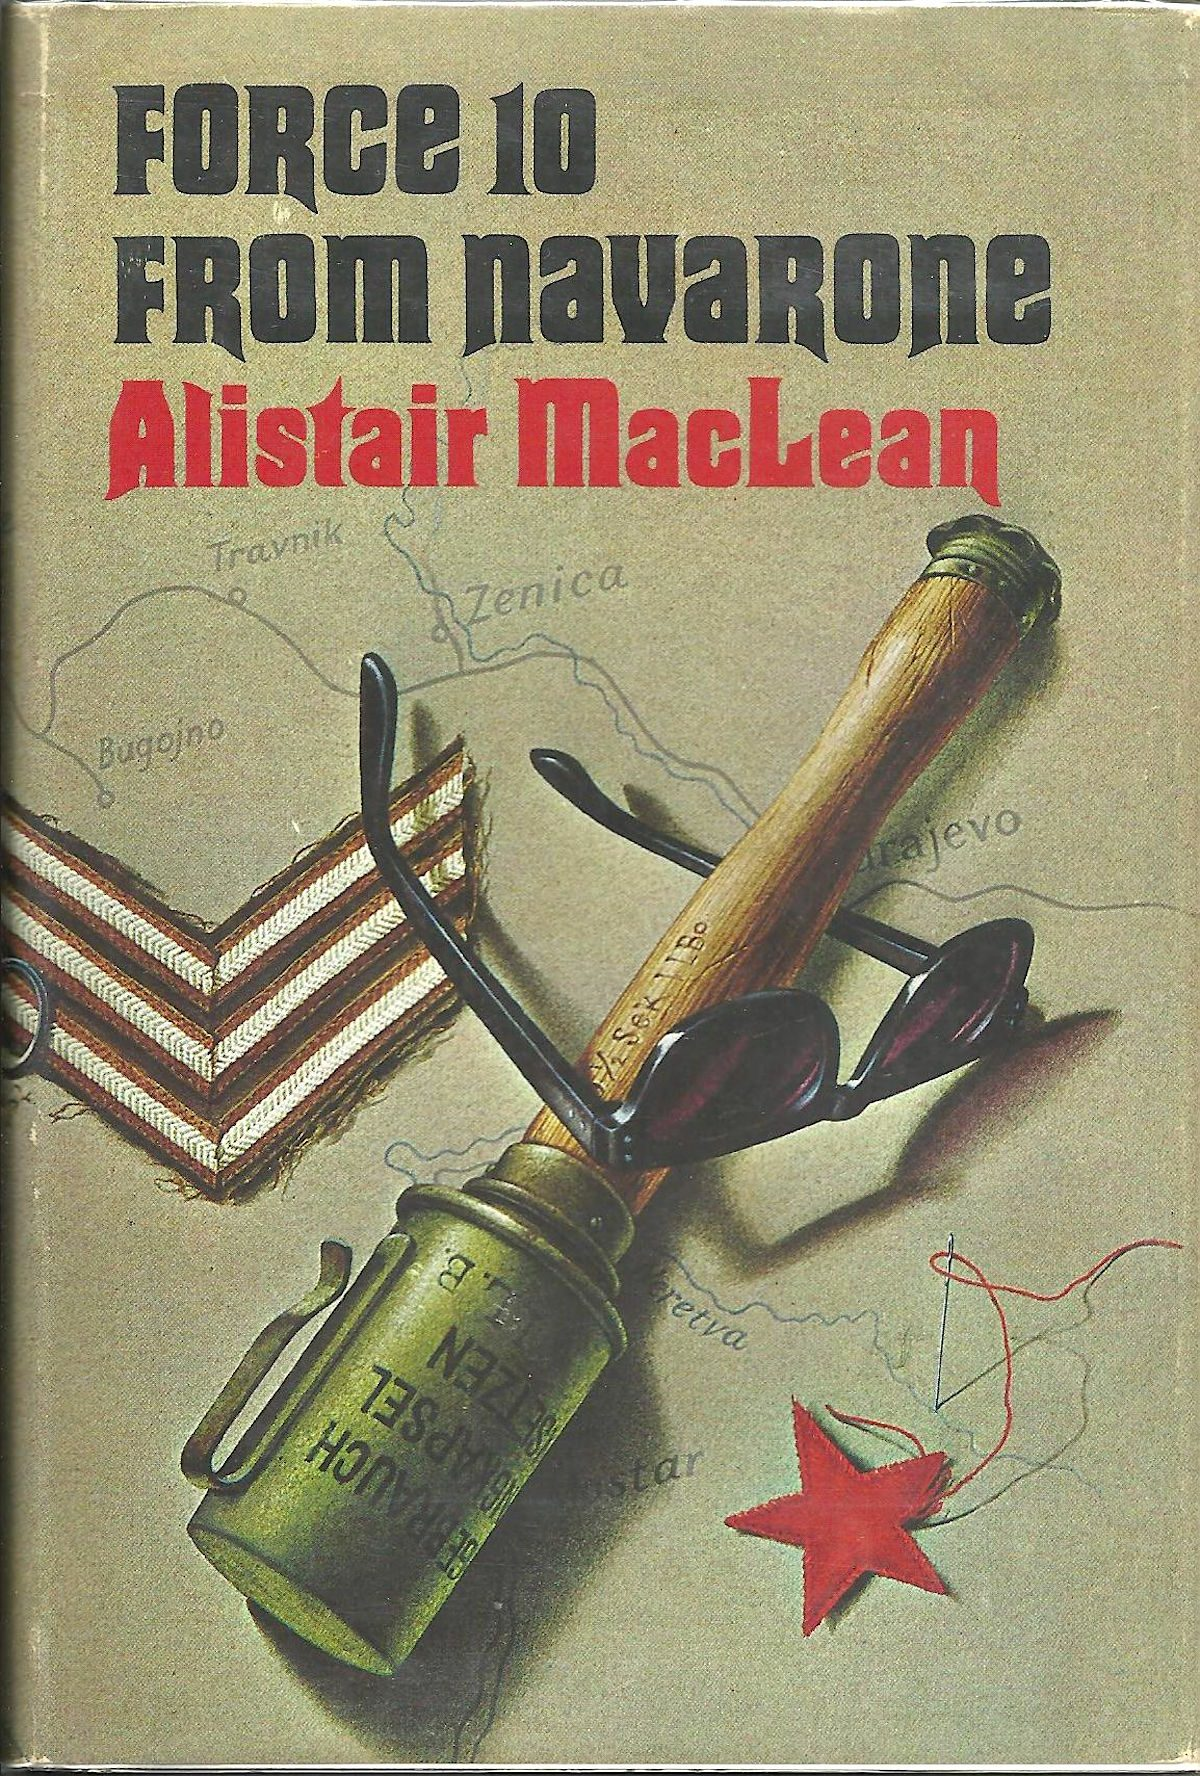 Alistair MacLean, Force 10 from Navarone, book